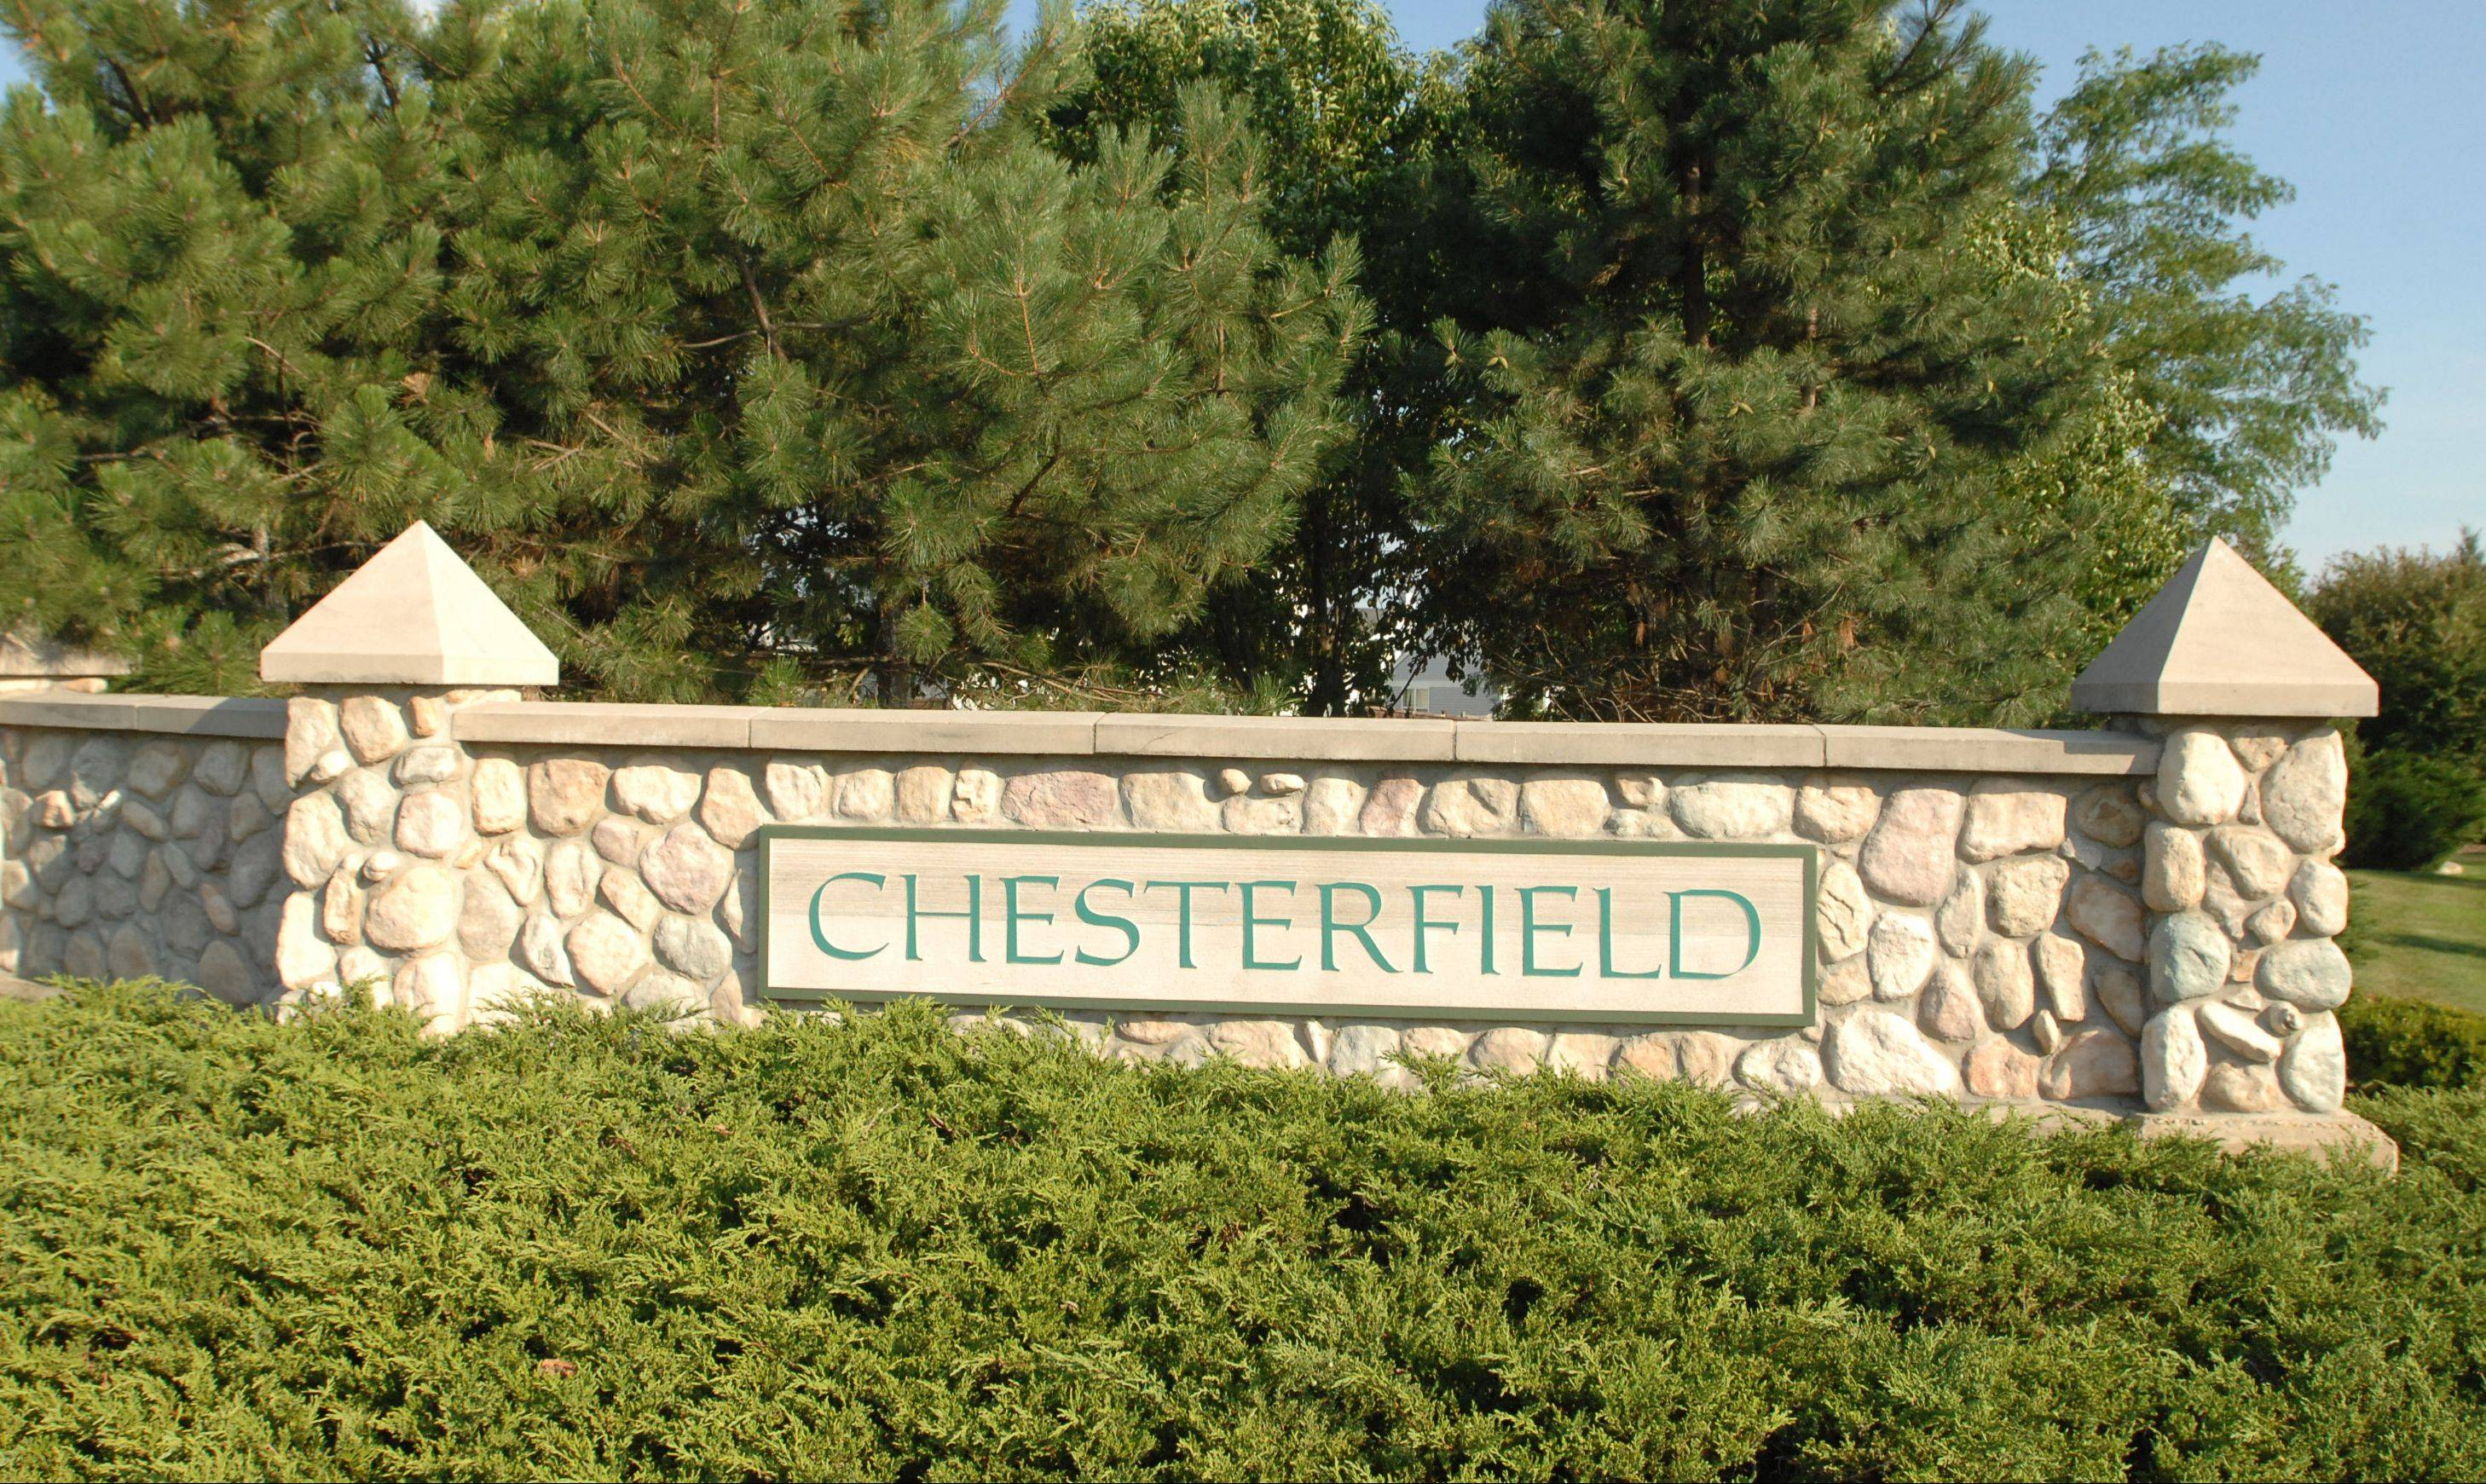 An elegant stone entrance sign welcomes residents and guests to North Aurora's Chesterfield neighborhood.